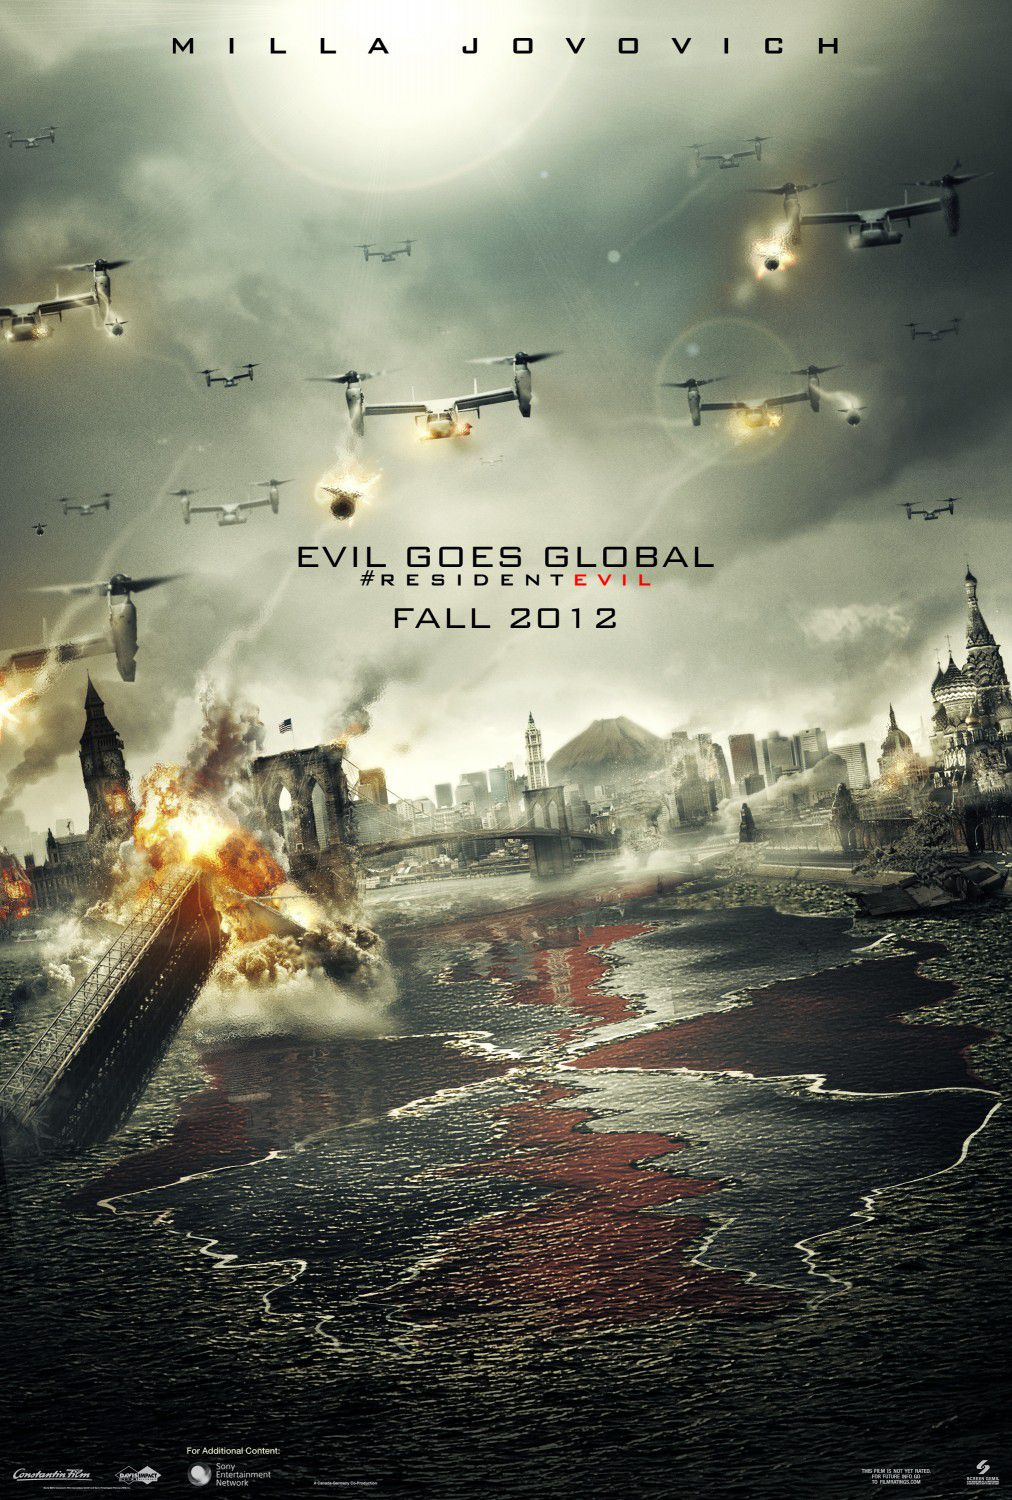 Resident Evil 5 - Retribution (2012) - final battle